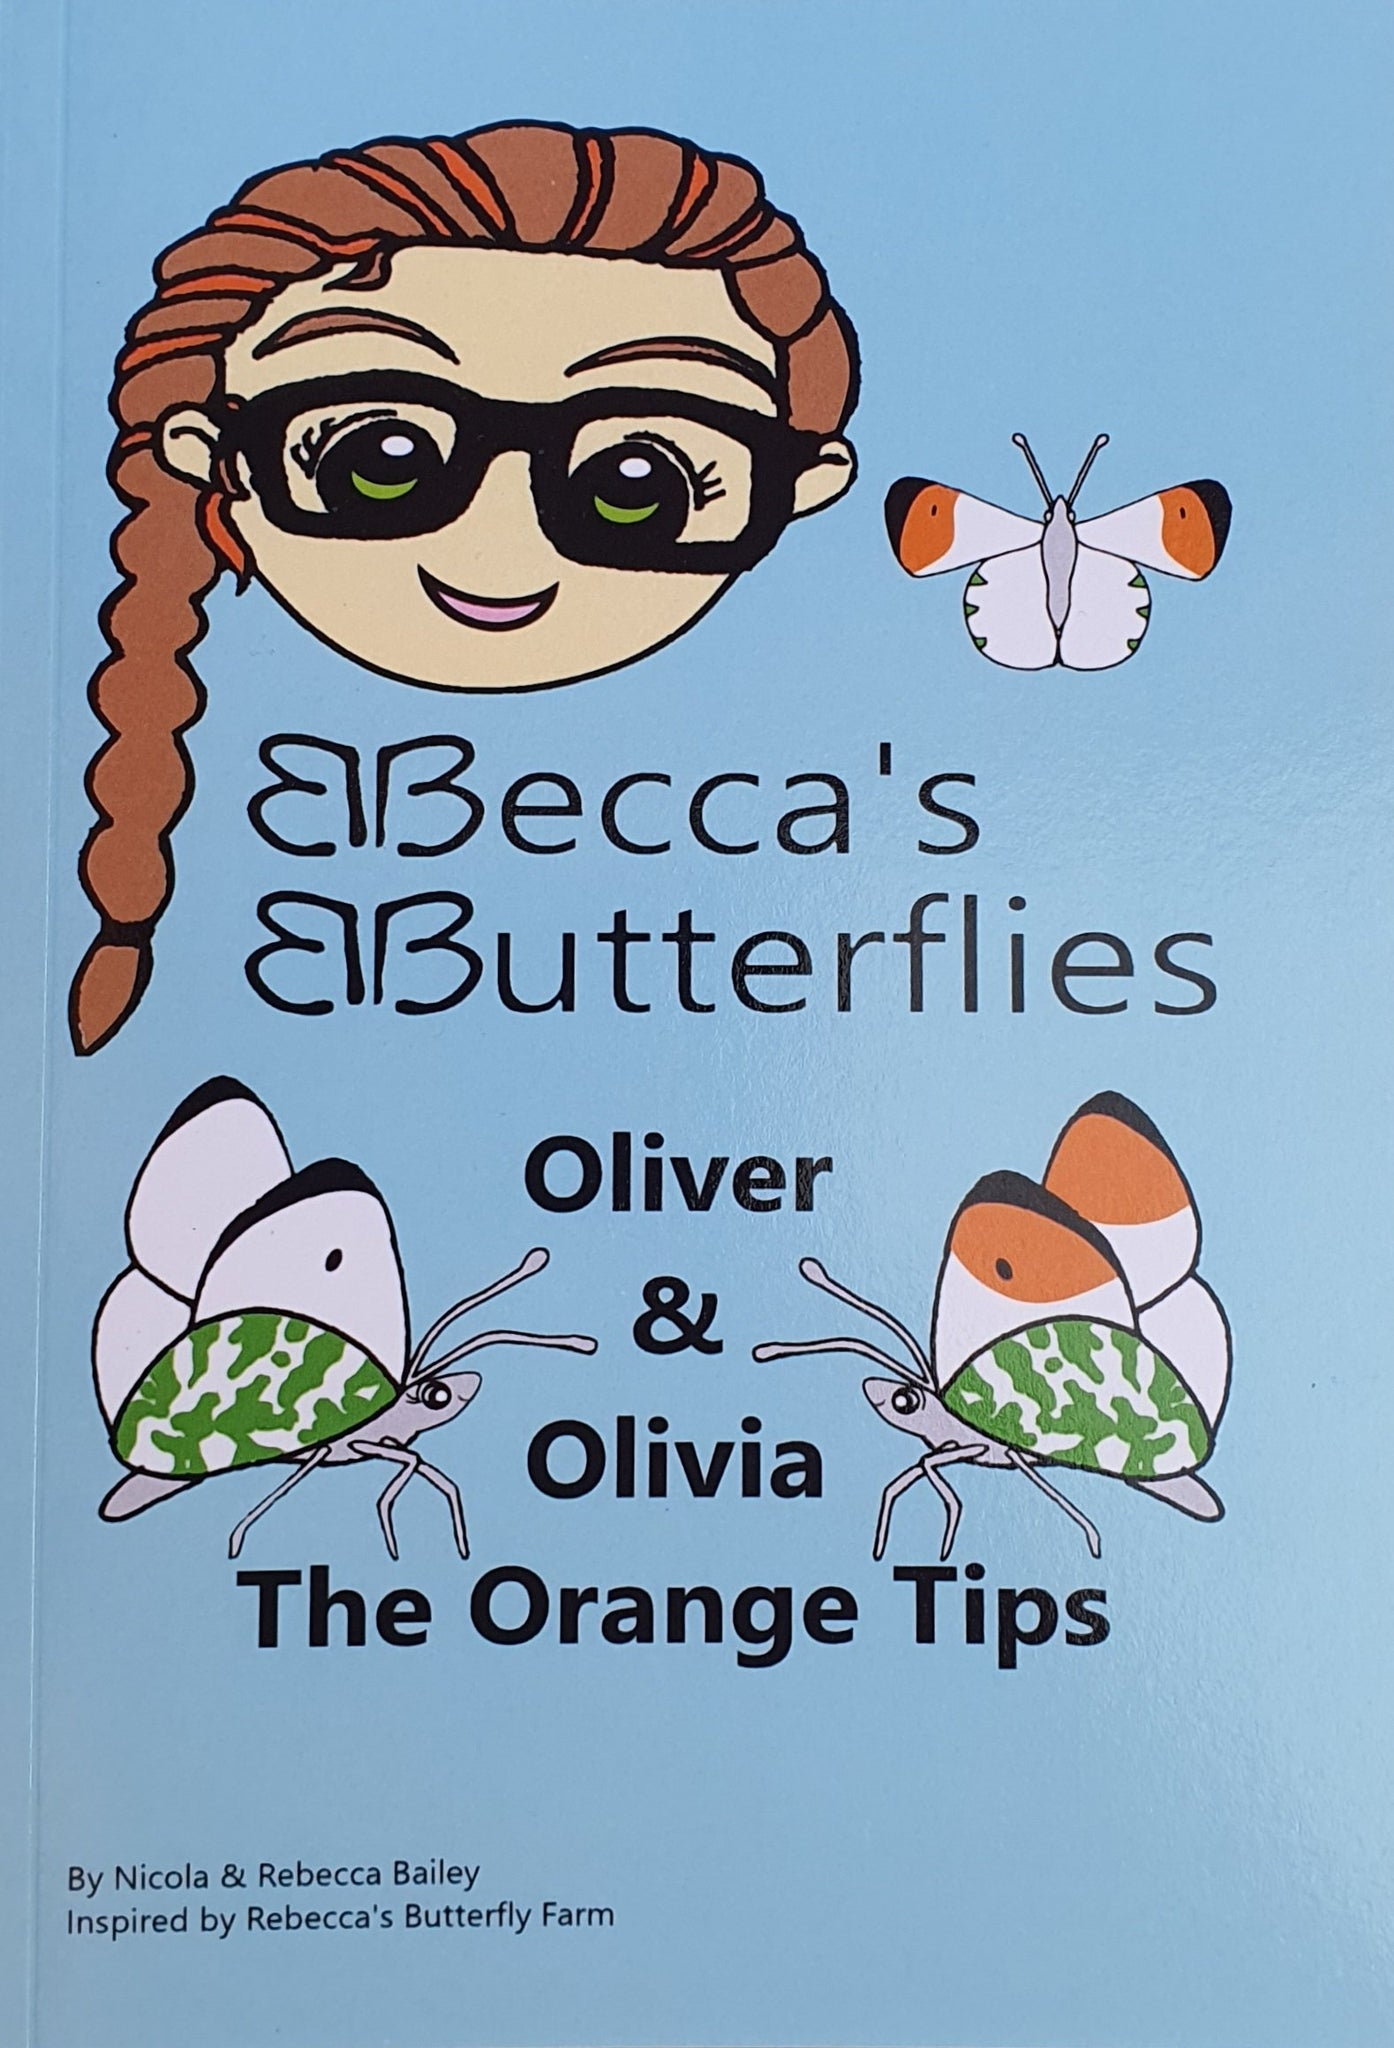 Oliver & Olivia the Orange Tips by Nicola and Rebecca Bailey